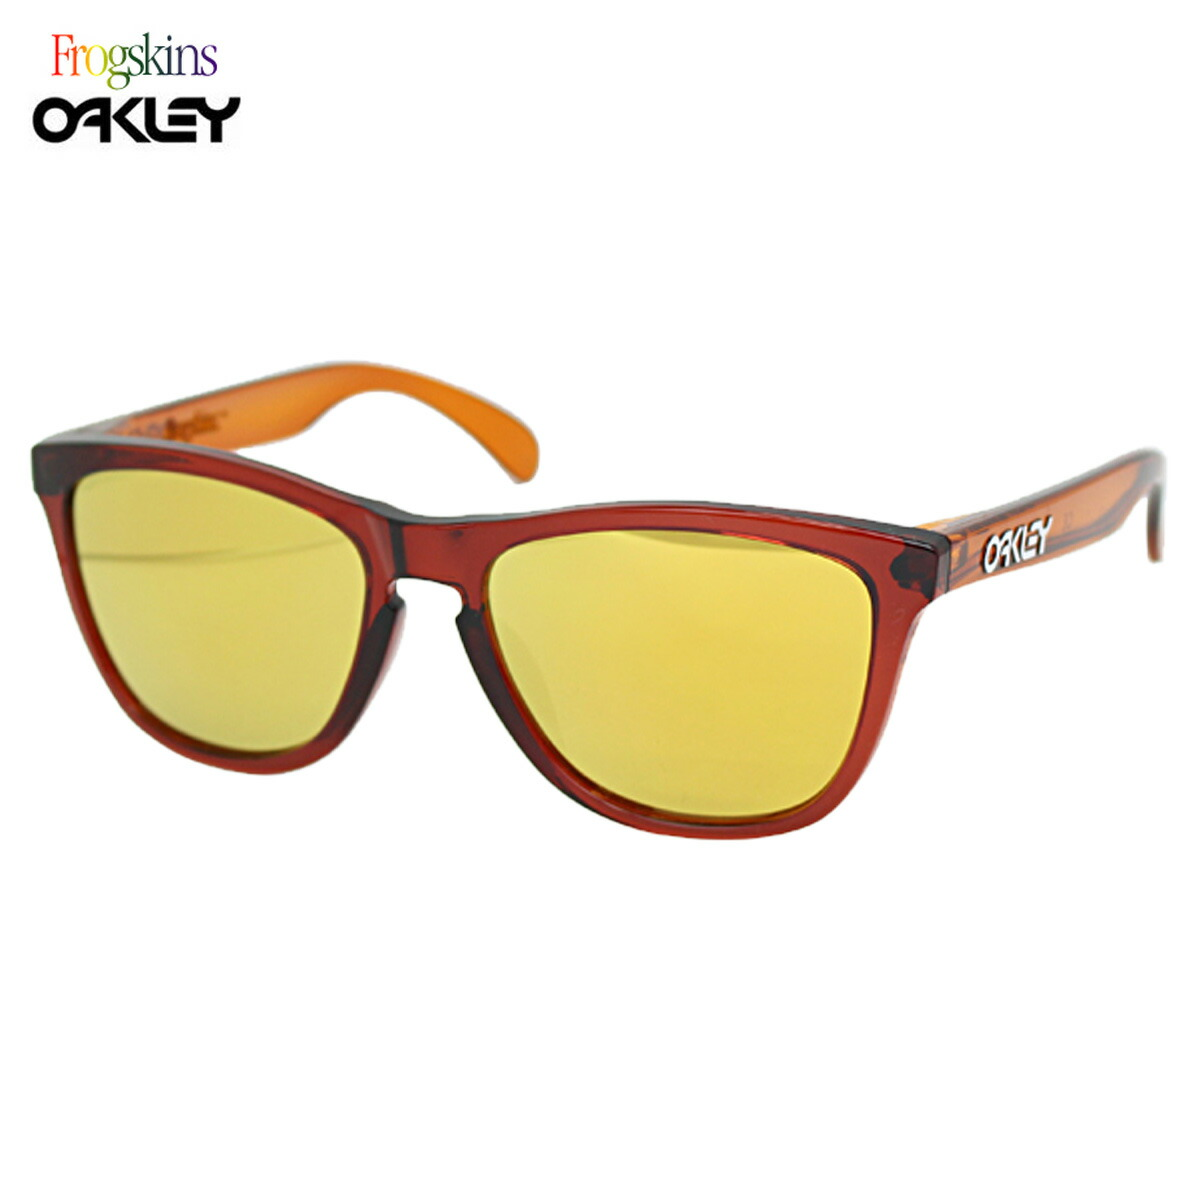 oakley womens sunglasses asian fit  oakley oakley sunglasses frogskins asian fit frog skin mens womens glasses asian fit oo9245 12 24 k iridium unisex